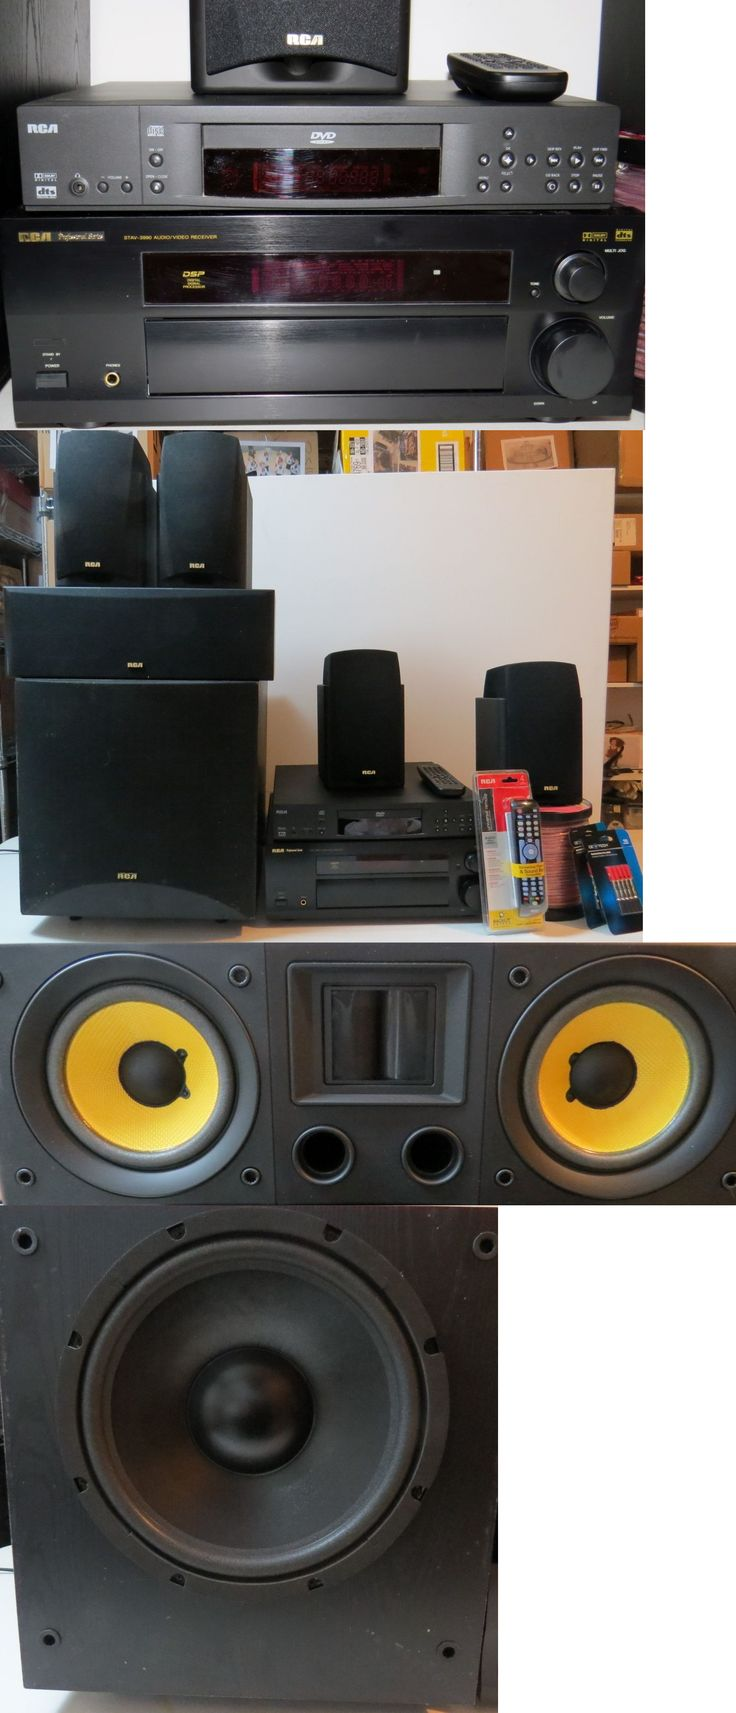 Home Theater Systems: Rca Professional Series 5.1 Home Theater System BUY IT NOW ONLY: $275.0